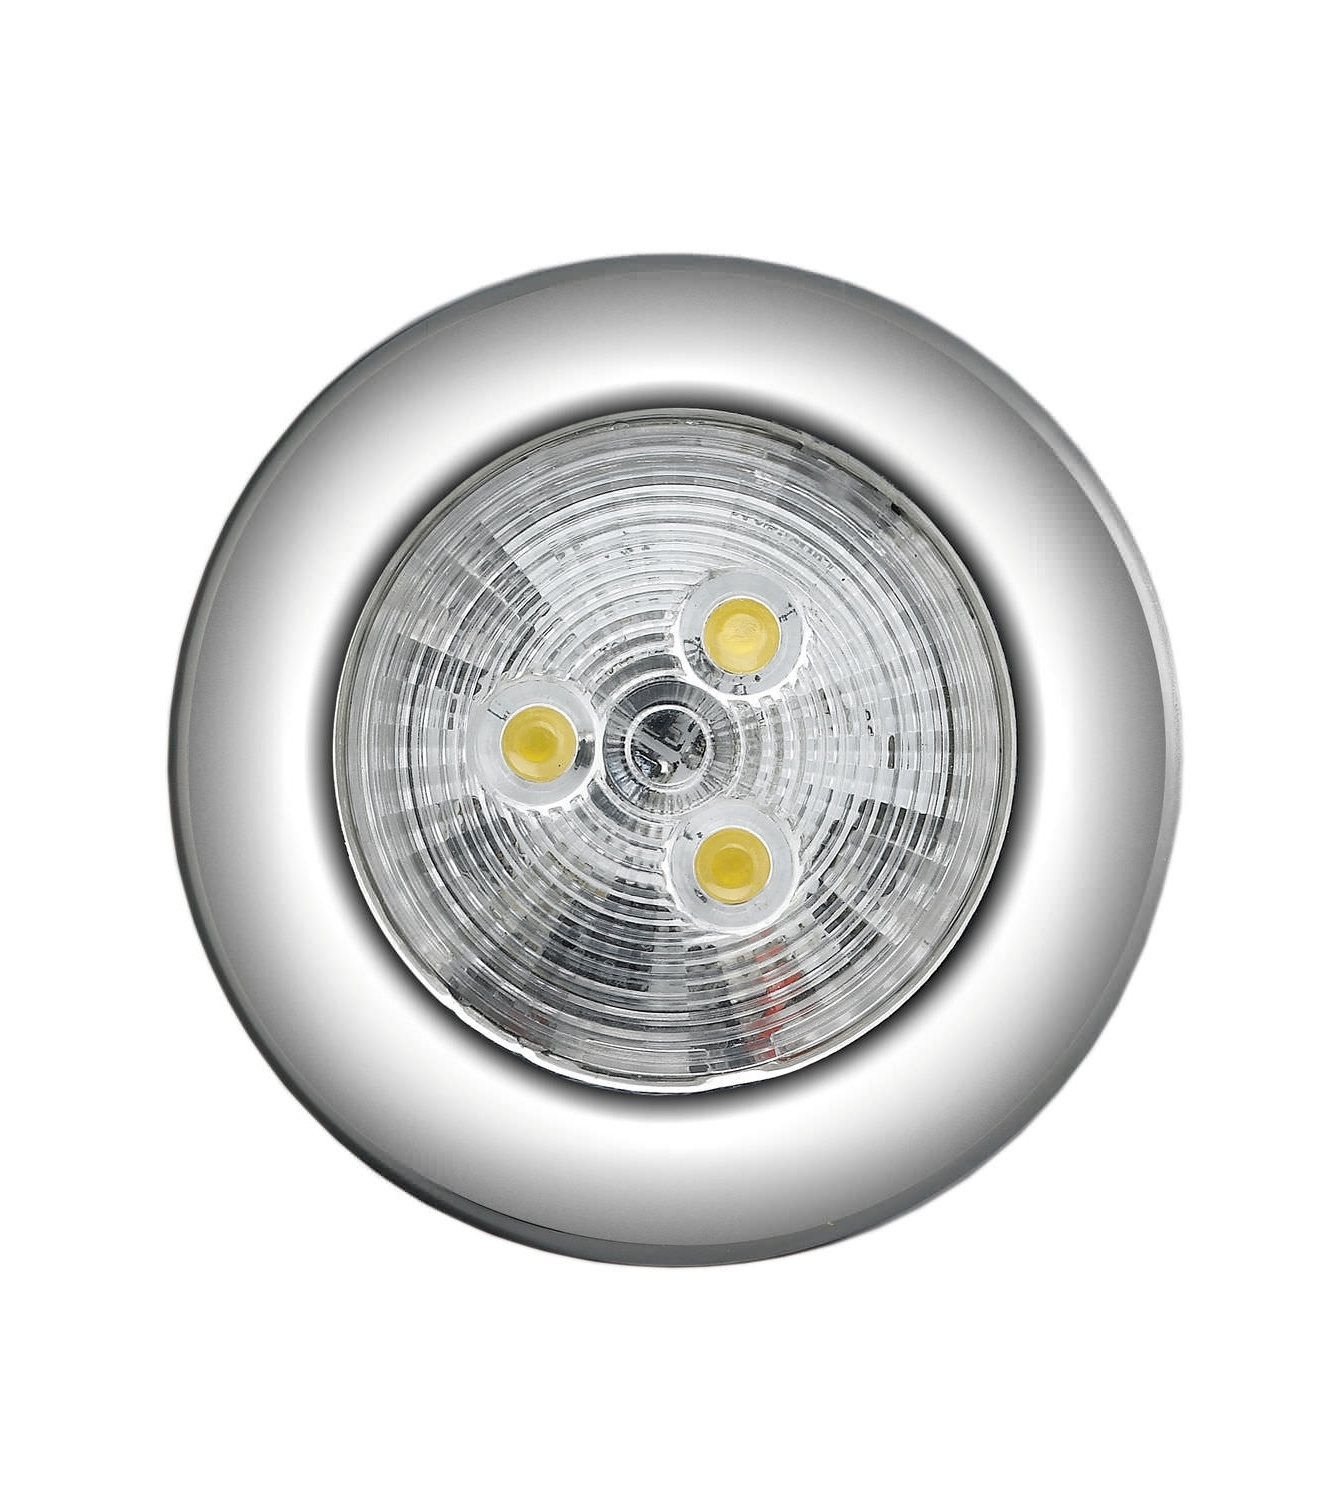 Most Recently Released Decorating : Outdoor Ceiling Light For Boats Led 00599Wh Aaa World Regarding Outdoor Ceiling Led Lights (View 9 of 20)